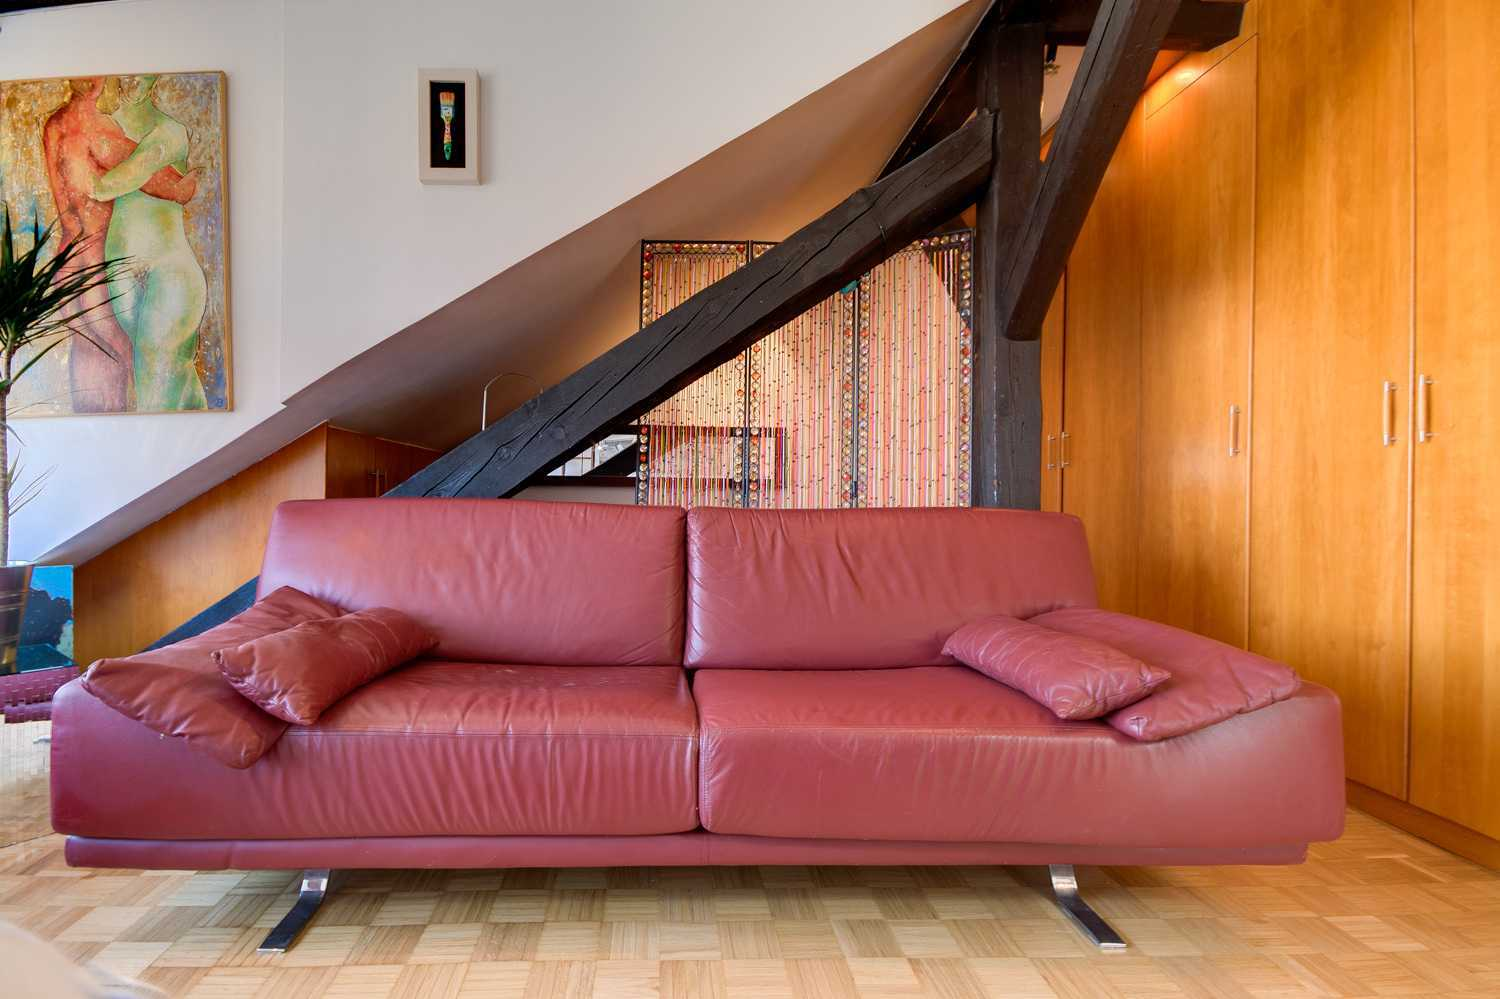 The living room has large red leather sofa.